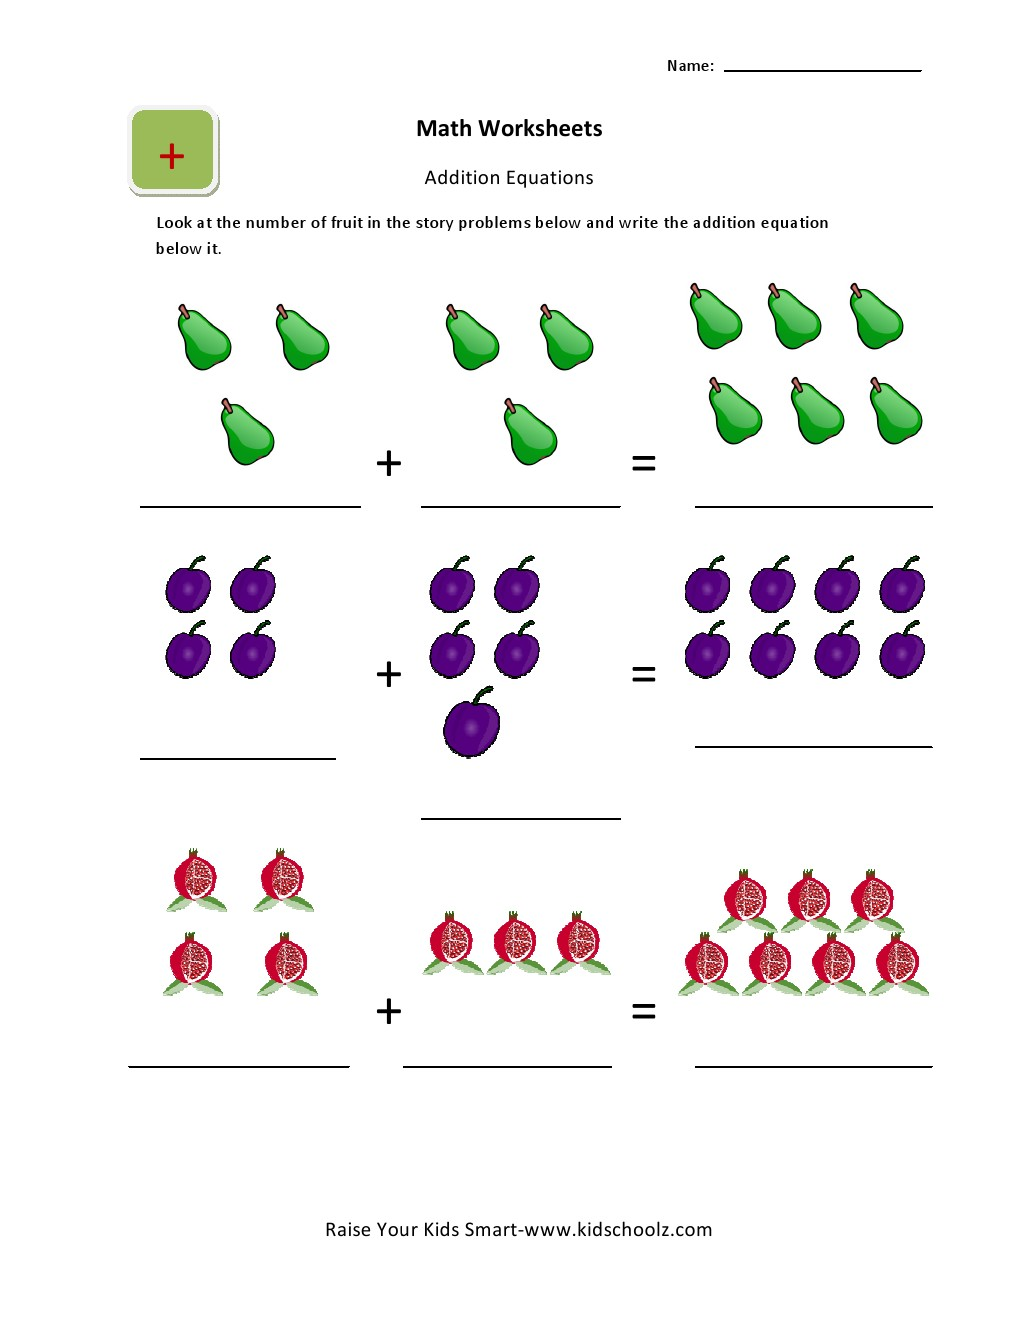 Student Math Worksheets : Maths worksheet for ukg students images about math